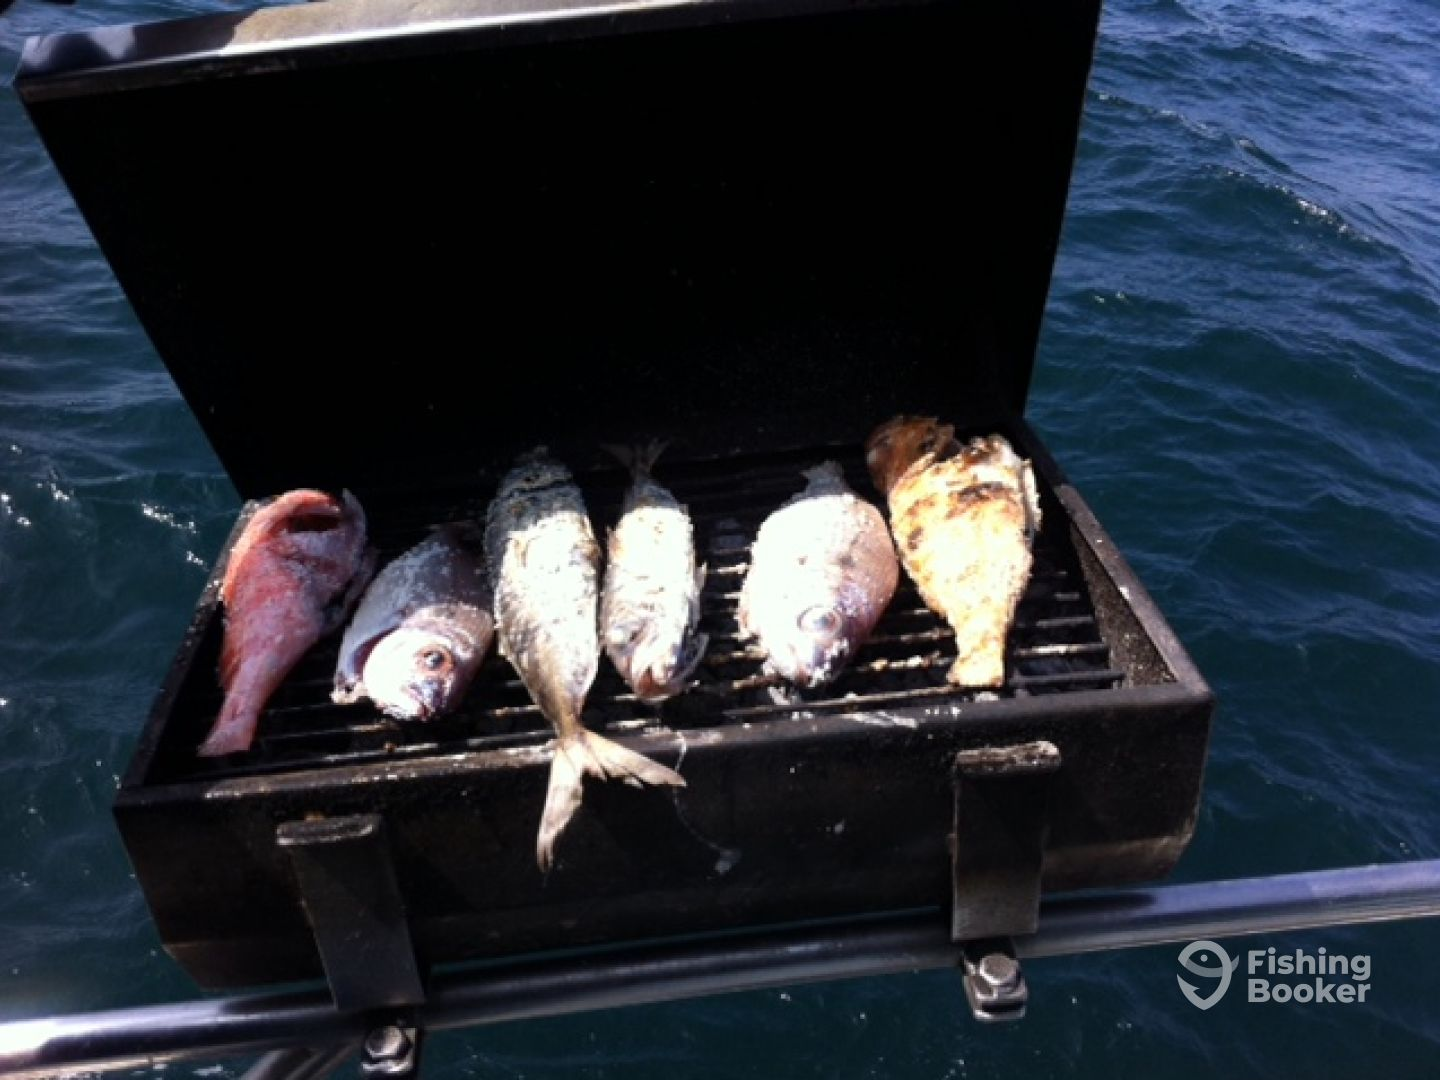 They catched the fishes, we clean and grill they eat!!